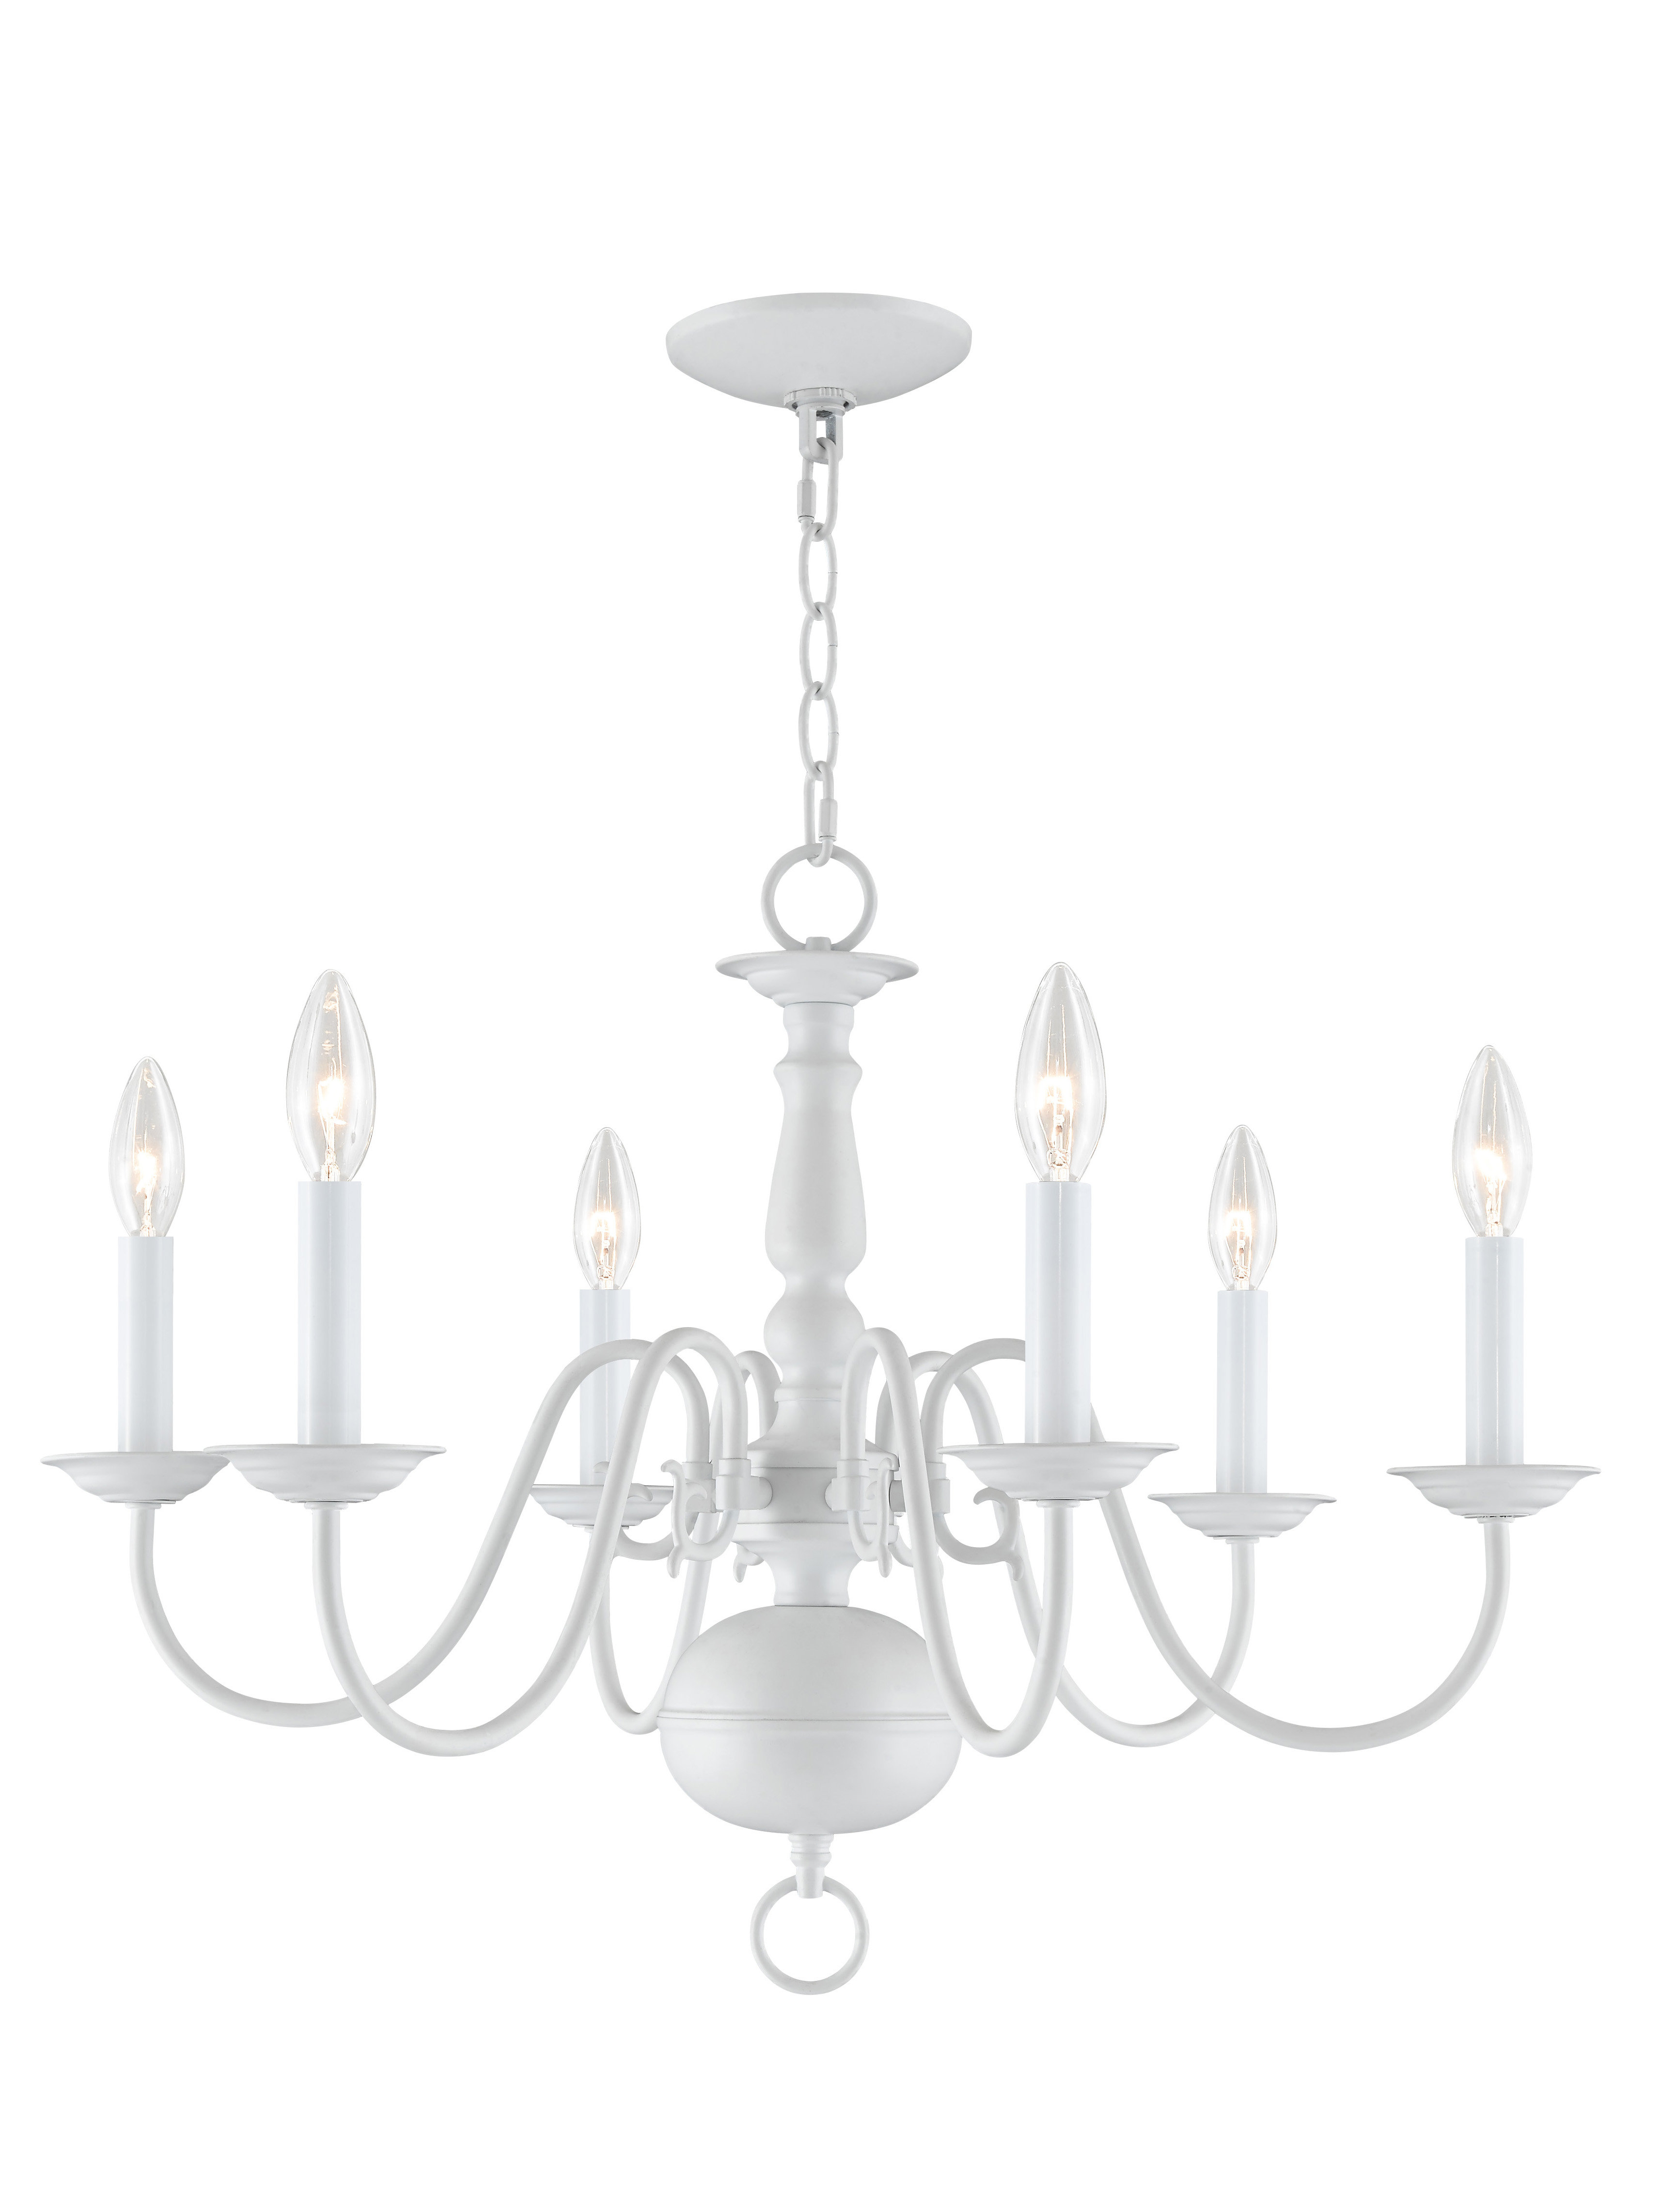 2020 Three Posts Allensby 6-Light Candle Style Chandelier inside Berger 5-Light Candle Style Chandeliers